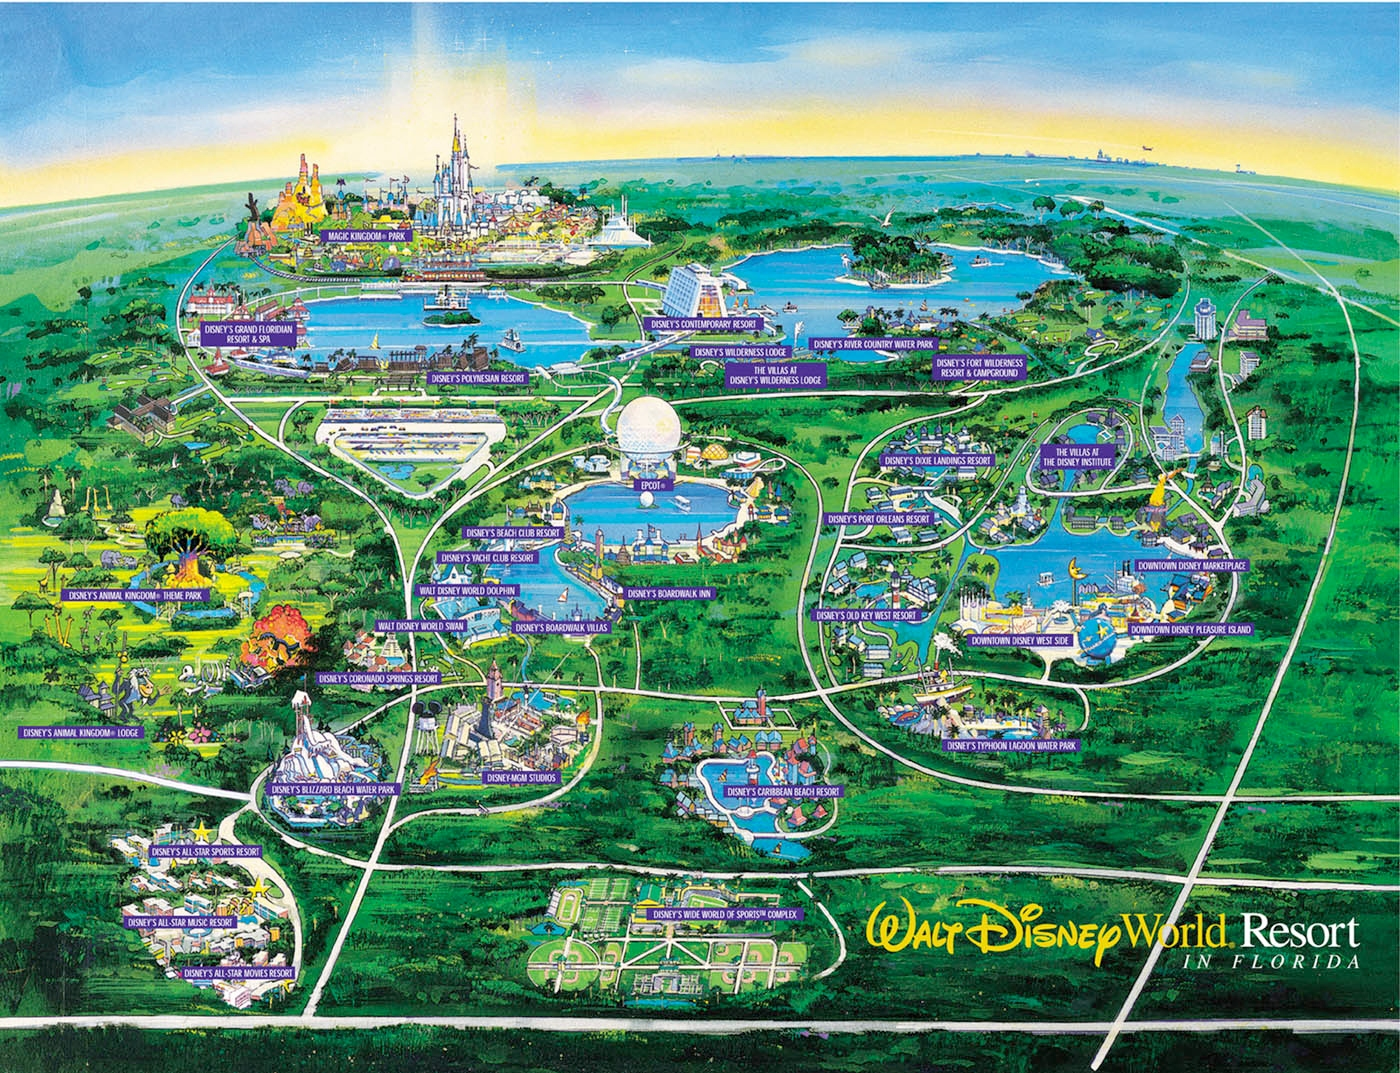 WDW Wall Map | Walt Disney World For Grownups